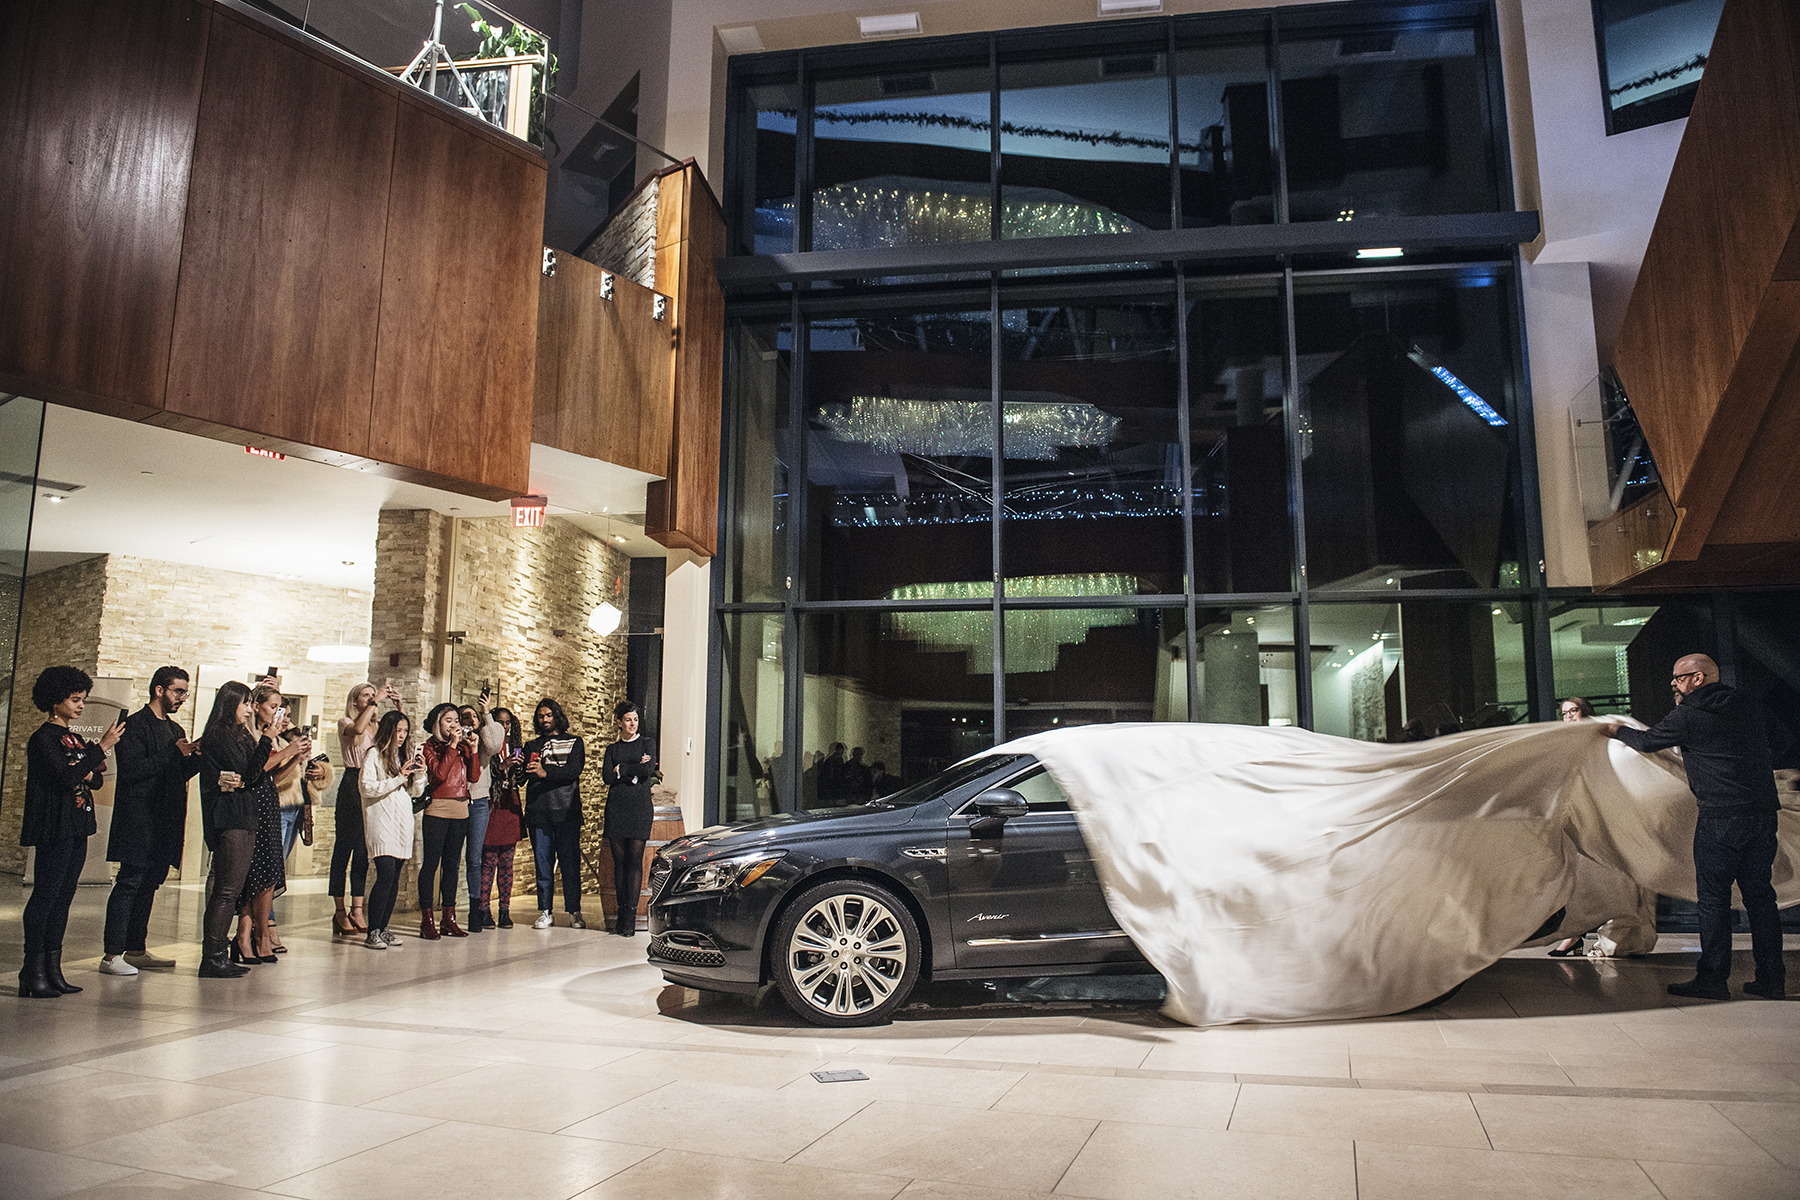 Buick unveiling at Sparkling Hill resort in Vernon, British Columbia | Happy Grey Lucky